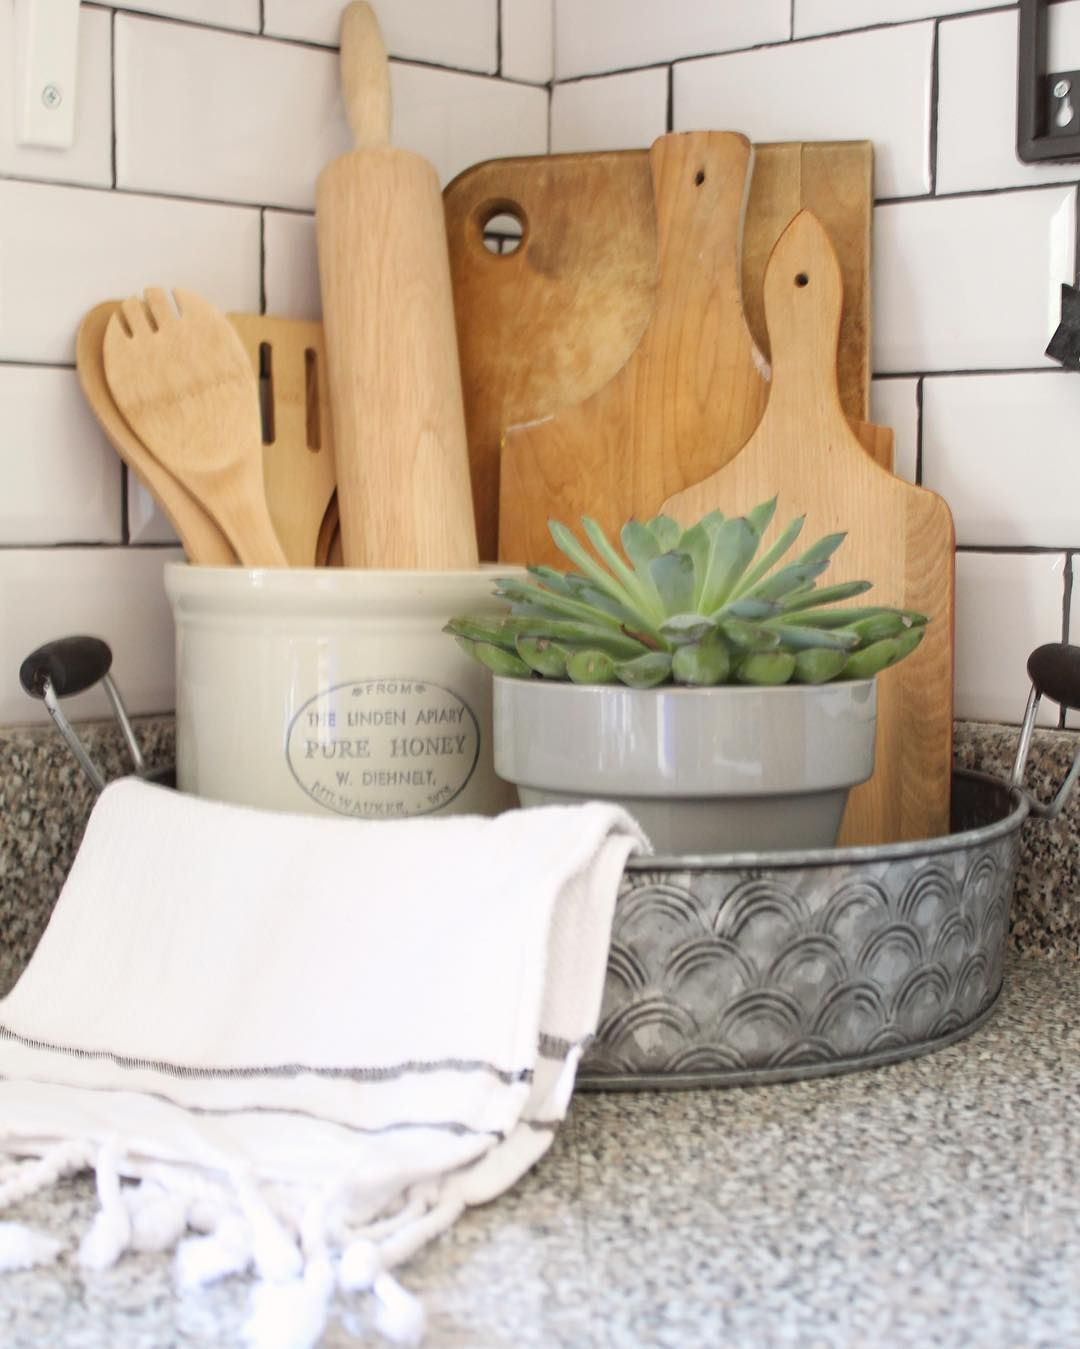 Staging Kitchen Counters: Pin By Kimberly Currie On Kitchen Ideas In 2019